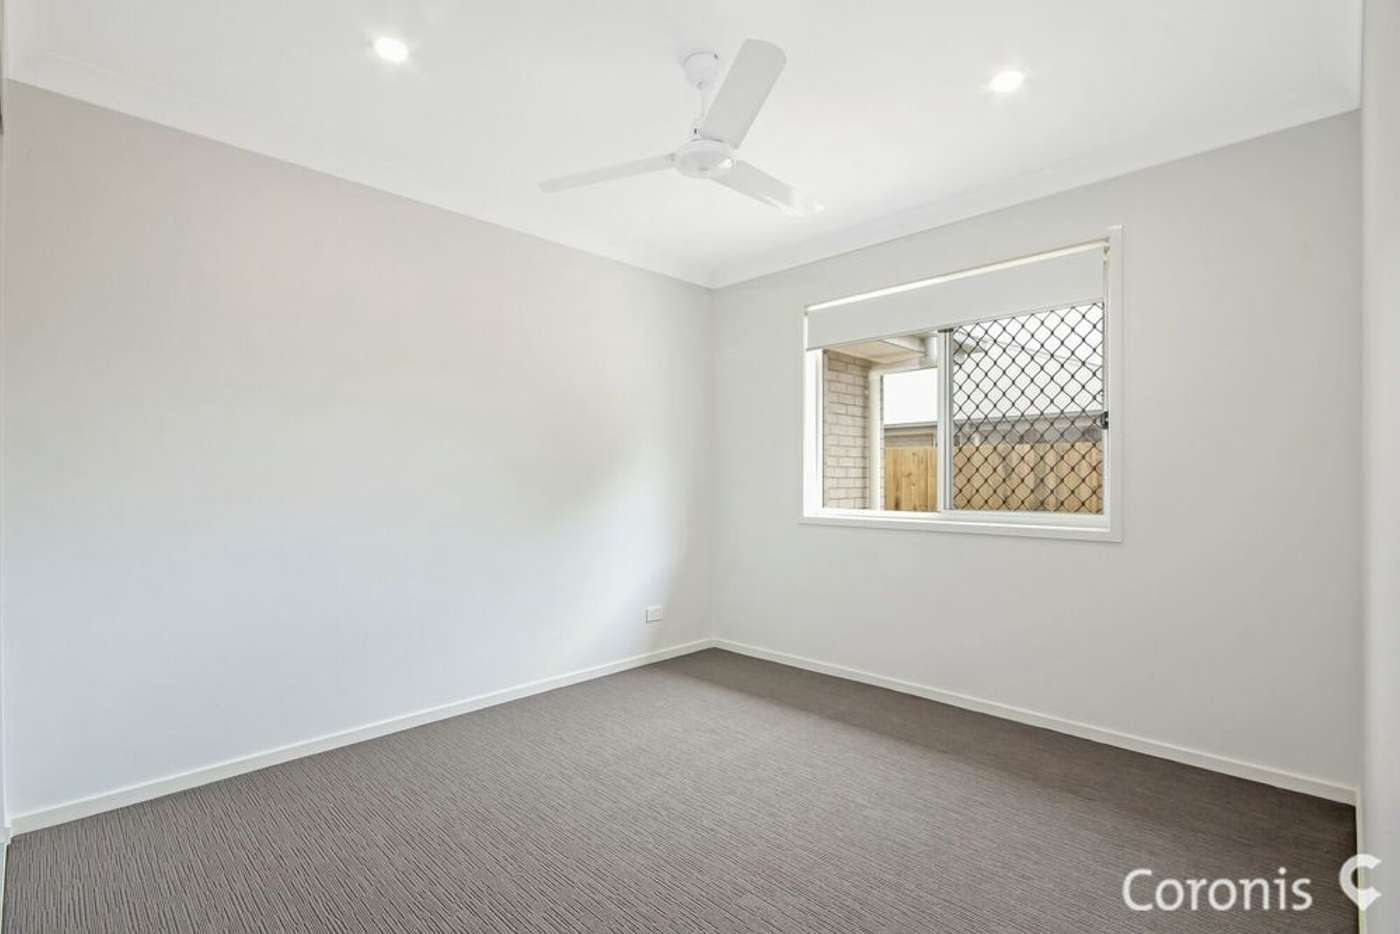 Sixth view of Homely house listing, 9 Graham Court, Caboolture QLD 4510